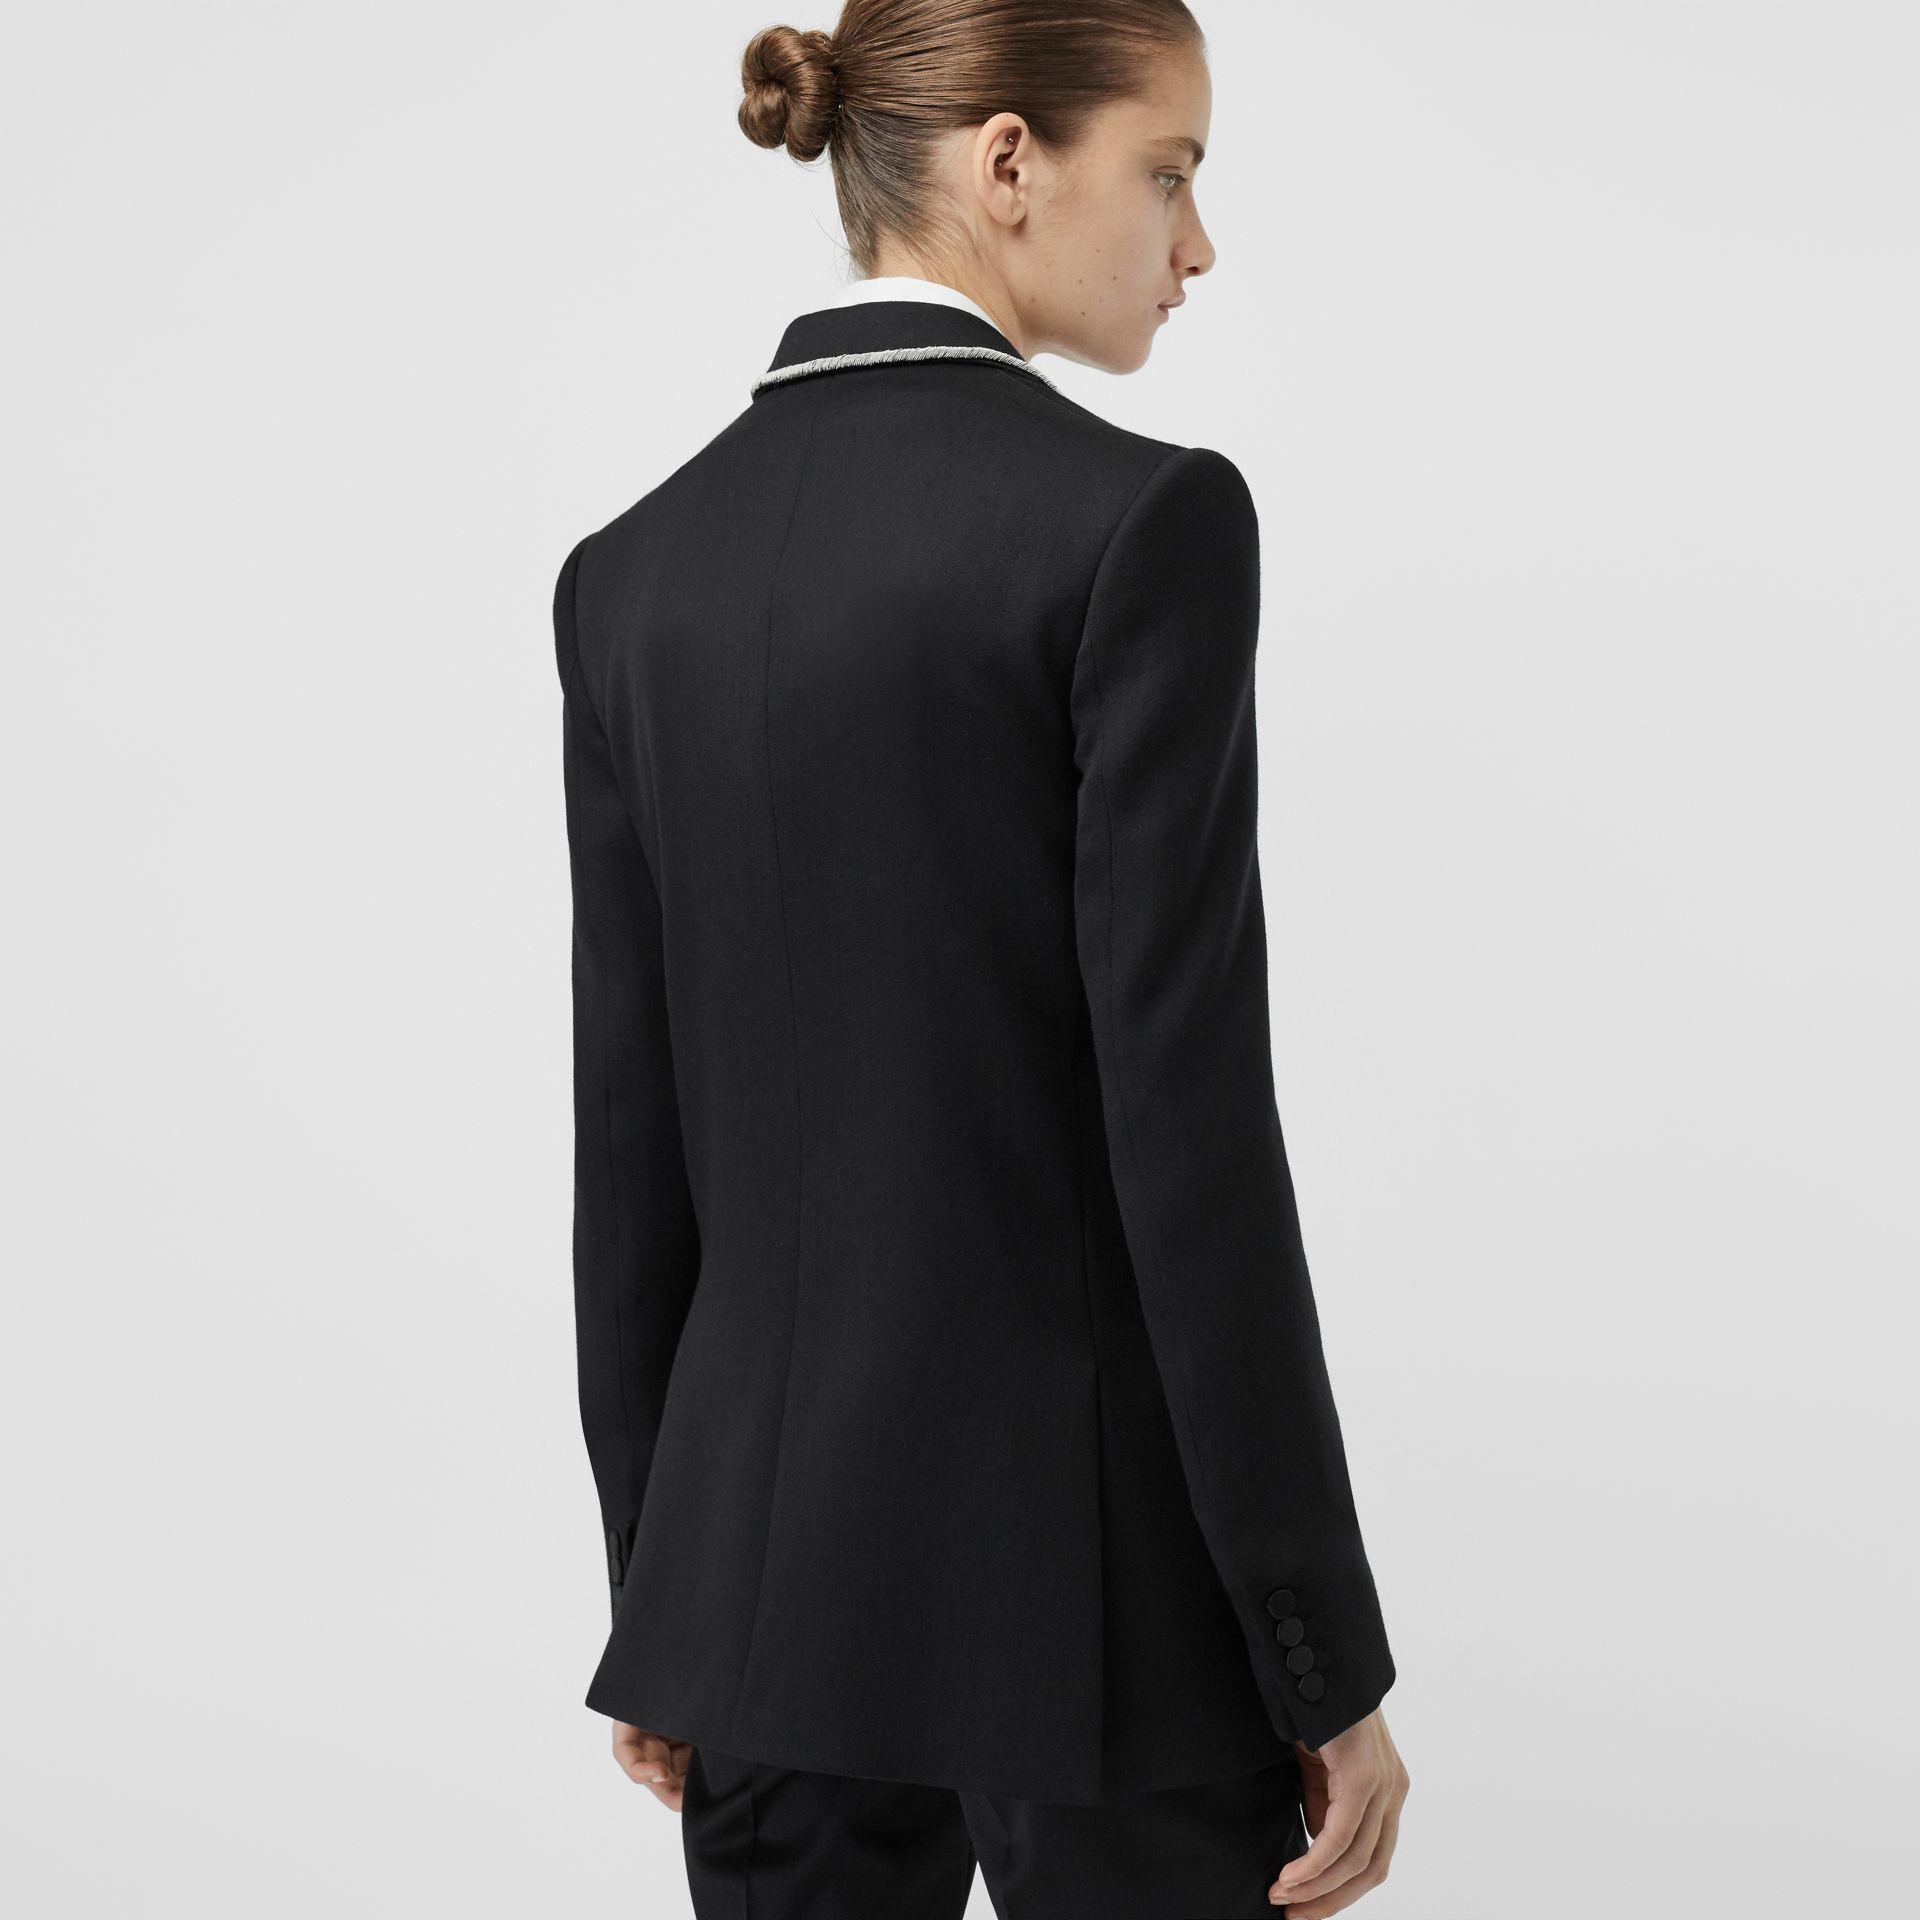 Bullion Stretch Wool Double-breasted Jacket in Black - Women | Burberry Hong Kong - gallery image 2